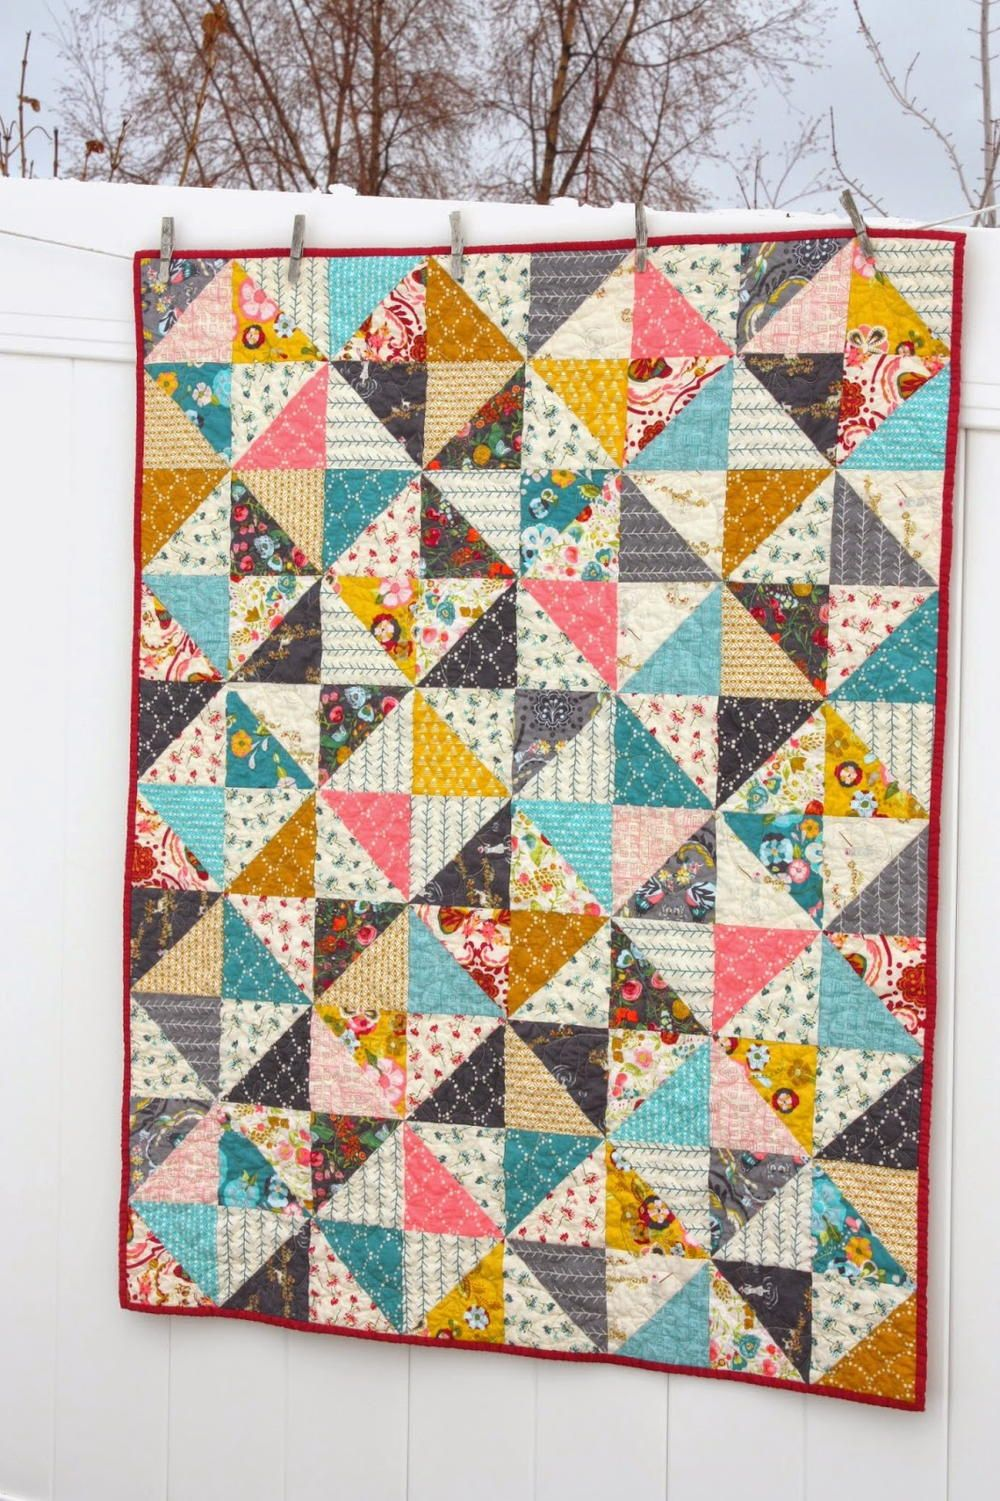 Free baby bed quilt patterns - From Cute Baby Quilt Patterns To Free Quilt Patterns Made From Pre Cuts Our Selection Is Insanely Extensive Even The Editors Come Across Quilts They Have